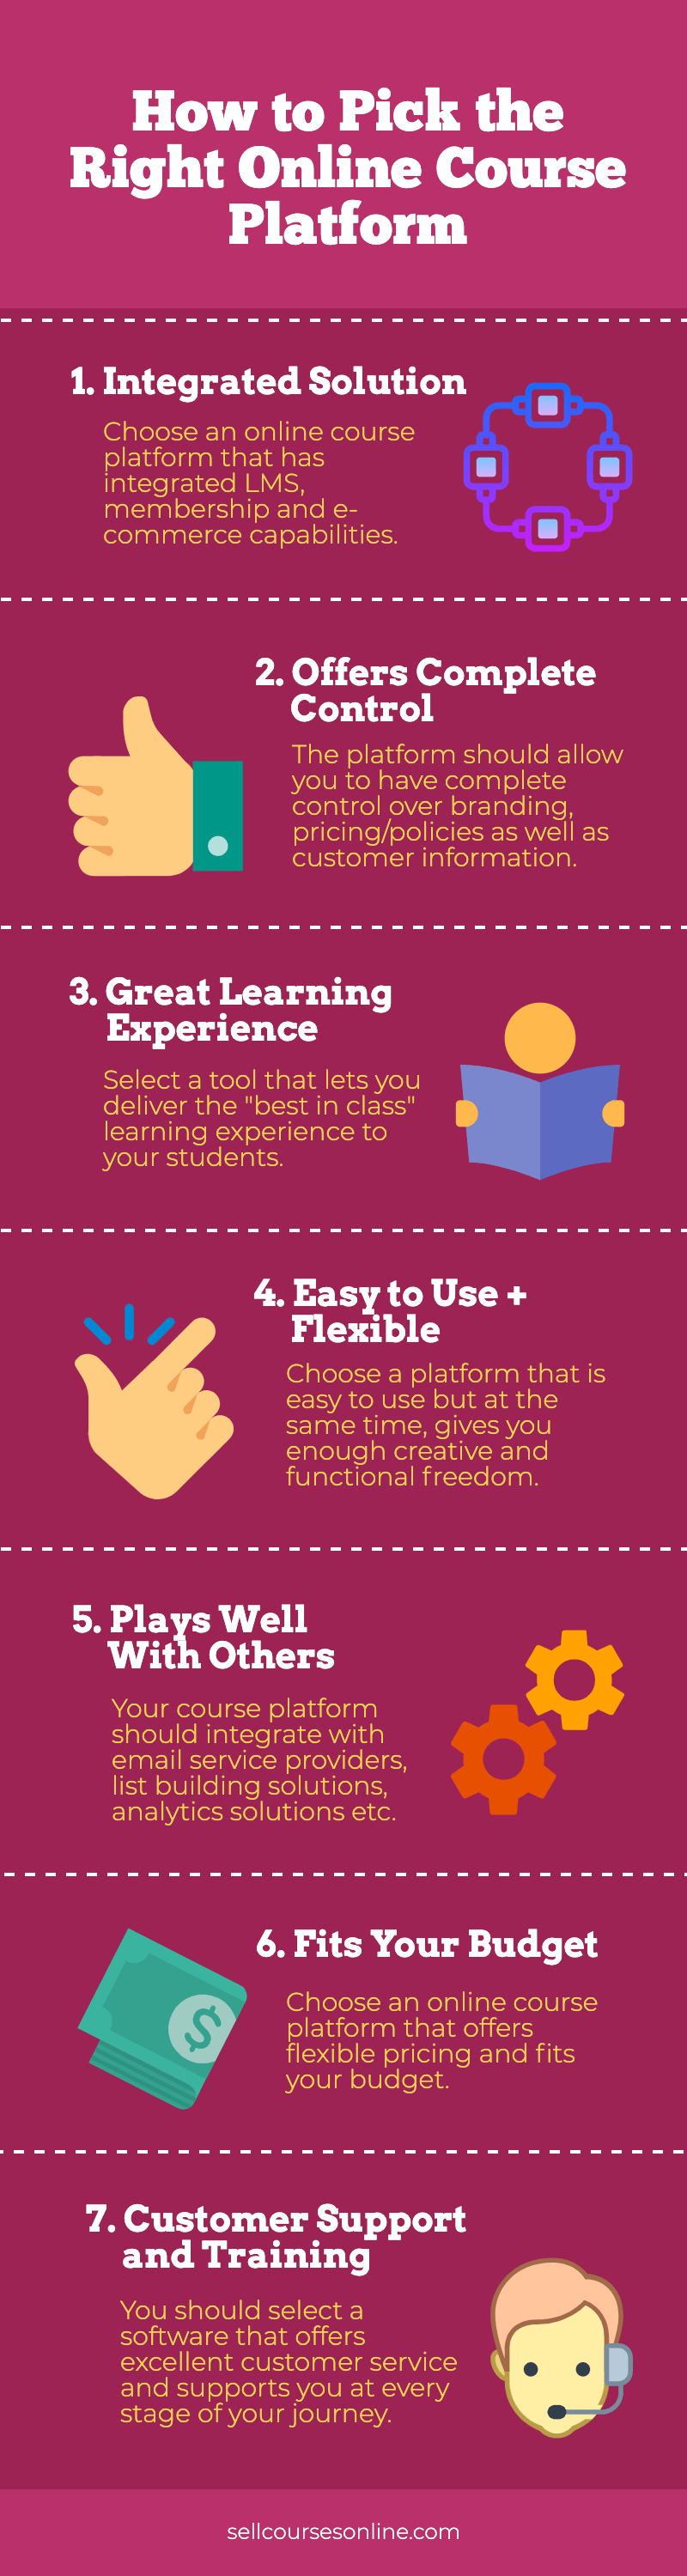 Infographic describing how to pick the right online course platform for your needs